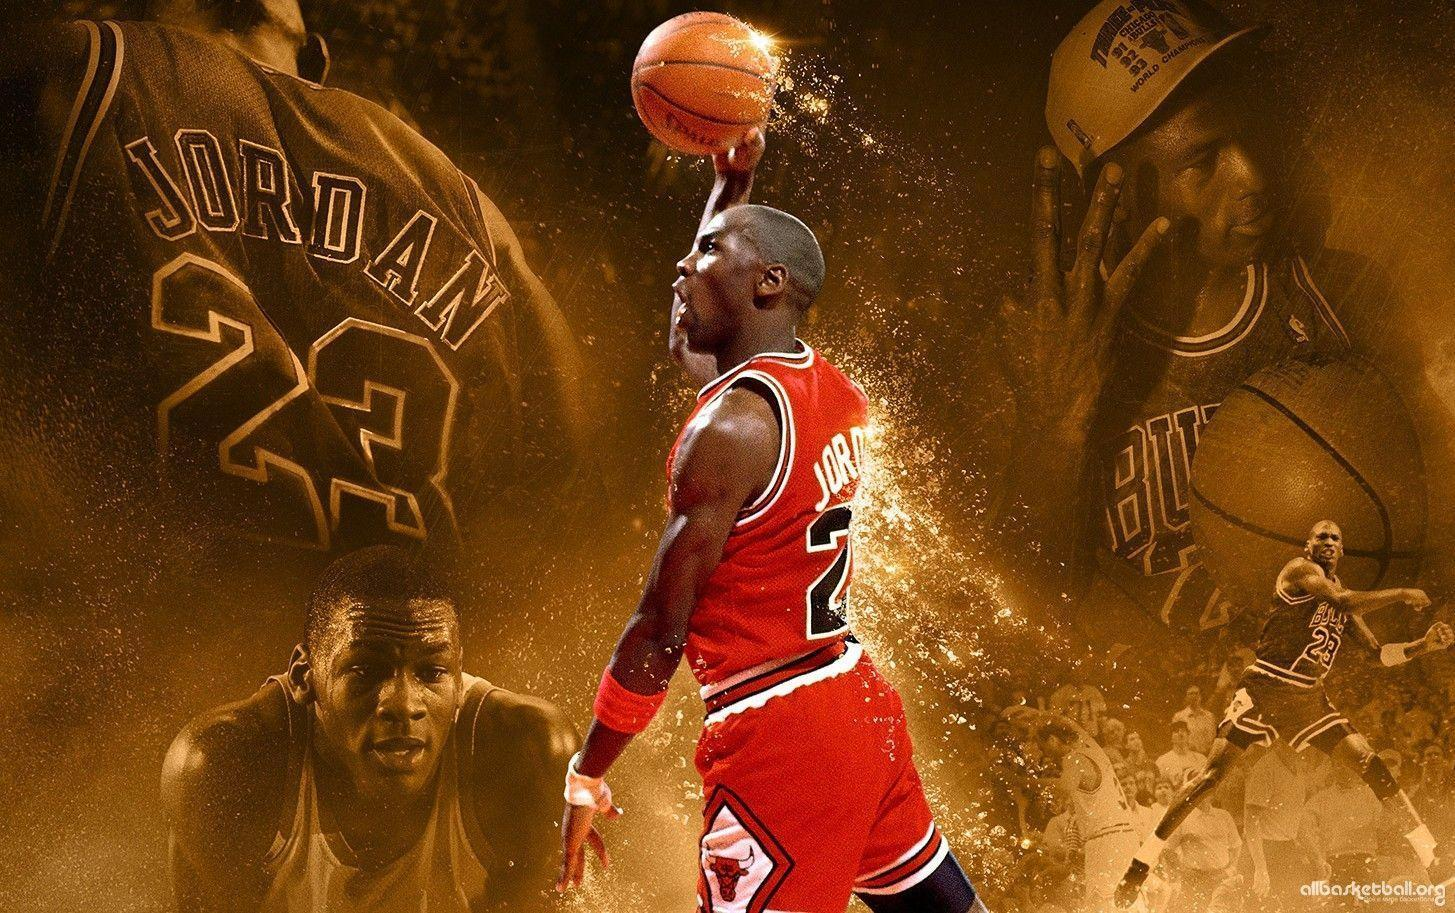 50 Nba Wallpapers Download Free Hd Backgrounds For: NBA 2K Wallpapers